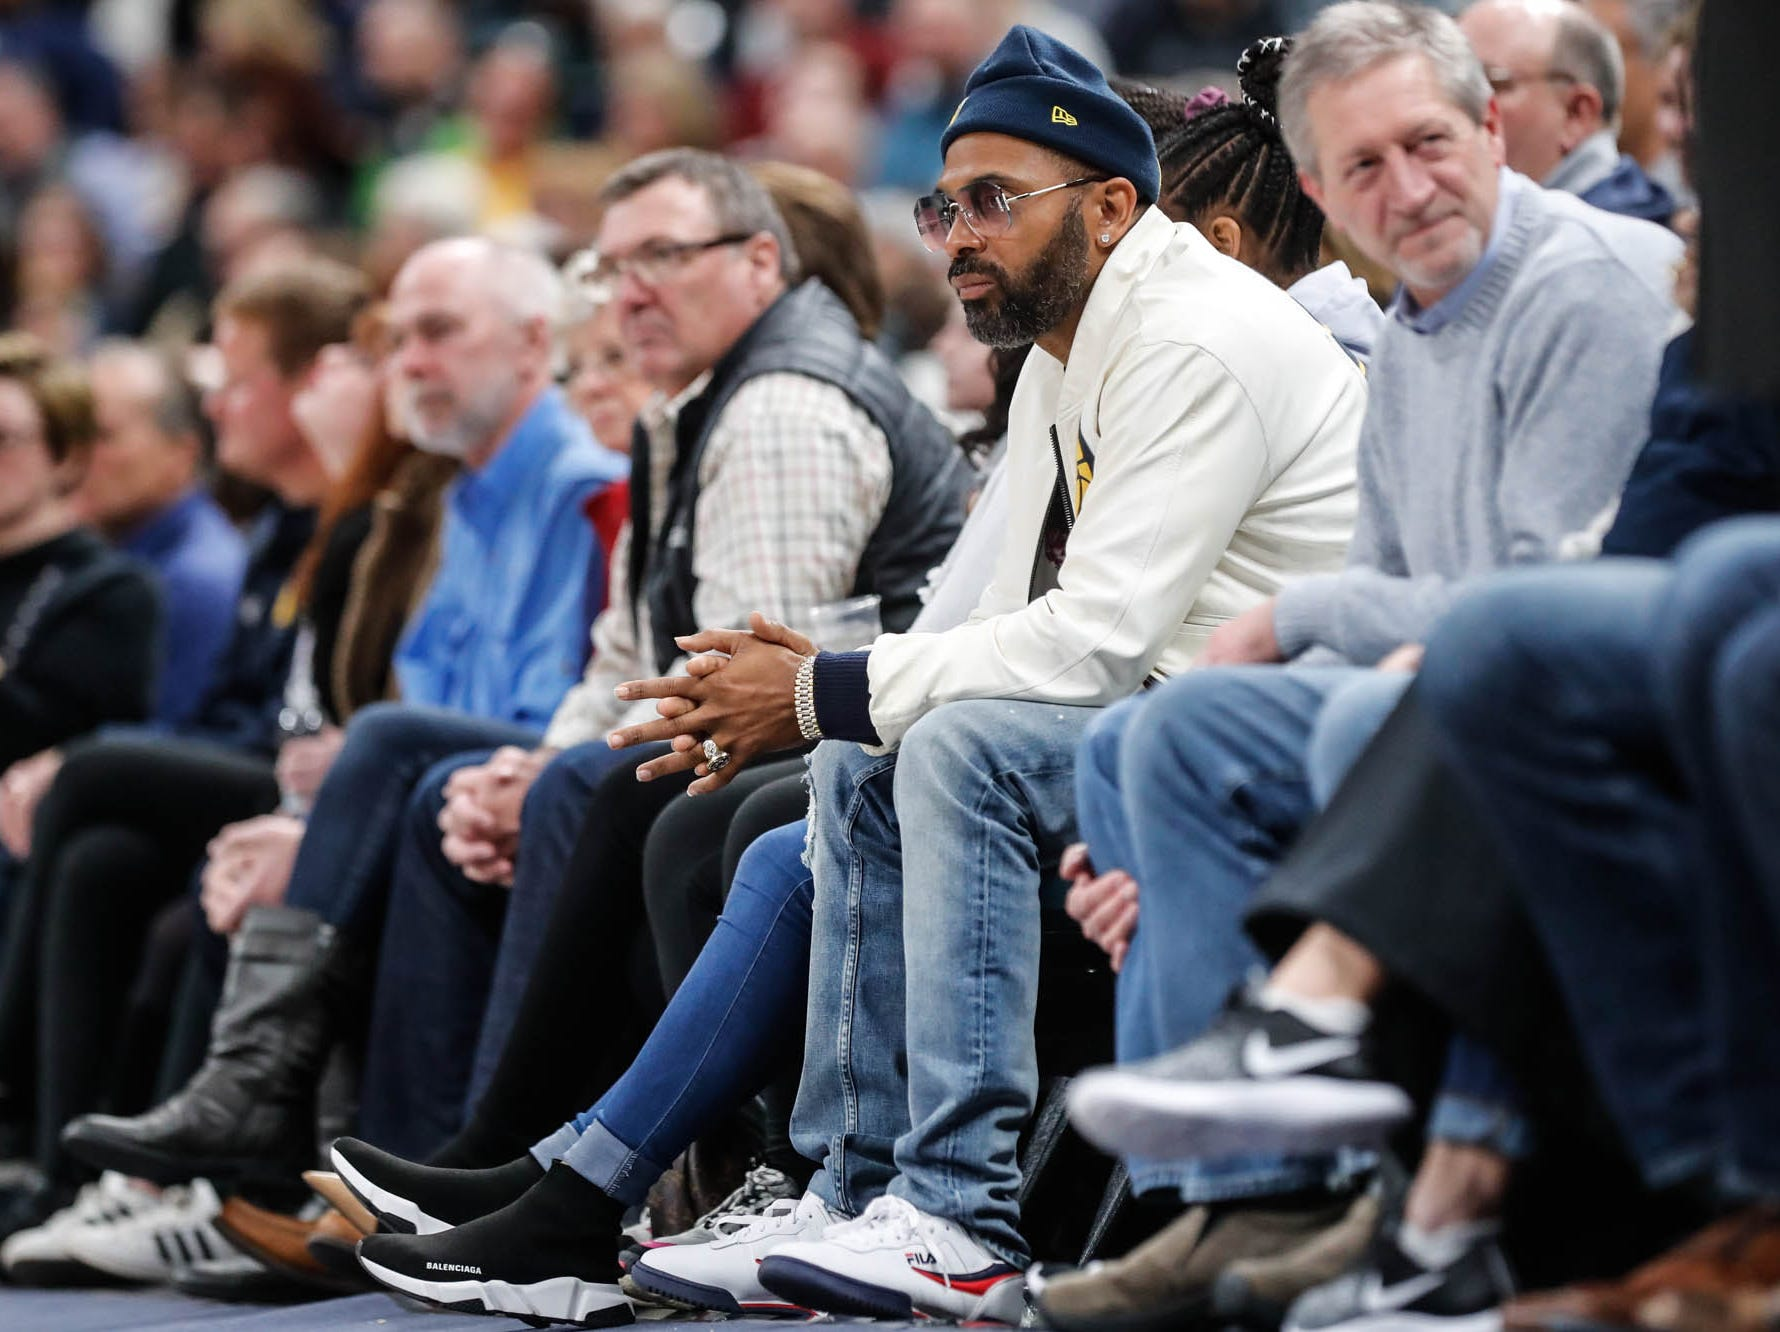 Mike Epps  attends a game between the Indiana Pacers and the Detroit Pistons at at Bankers Life Fieldhouse in Indianapolis on Friday, Dec. 28, 2018.